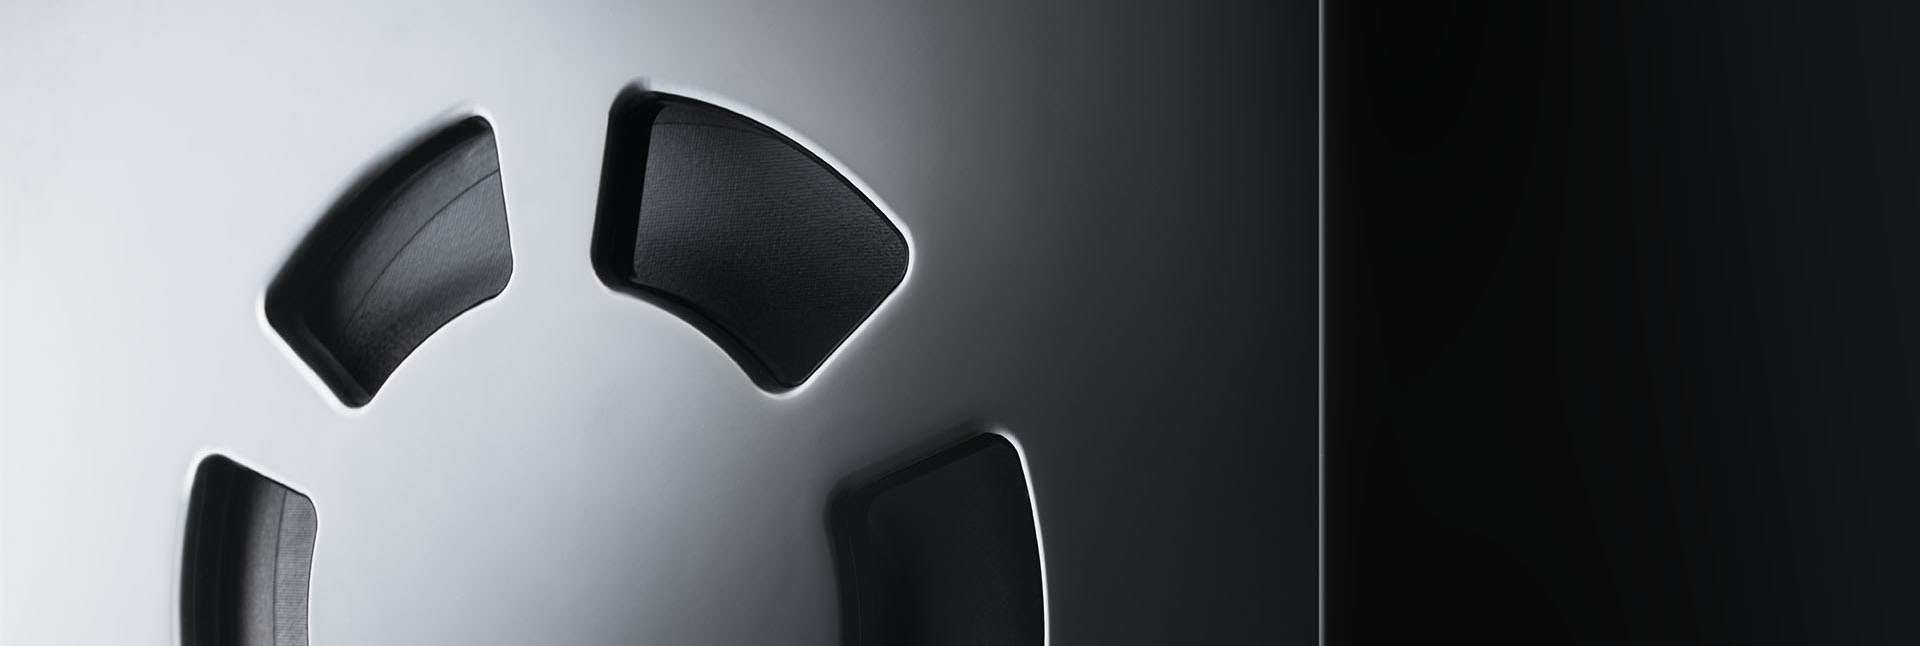 Steinmusic_Subwoofer_Bass_XL_Detail_